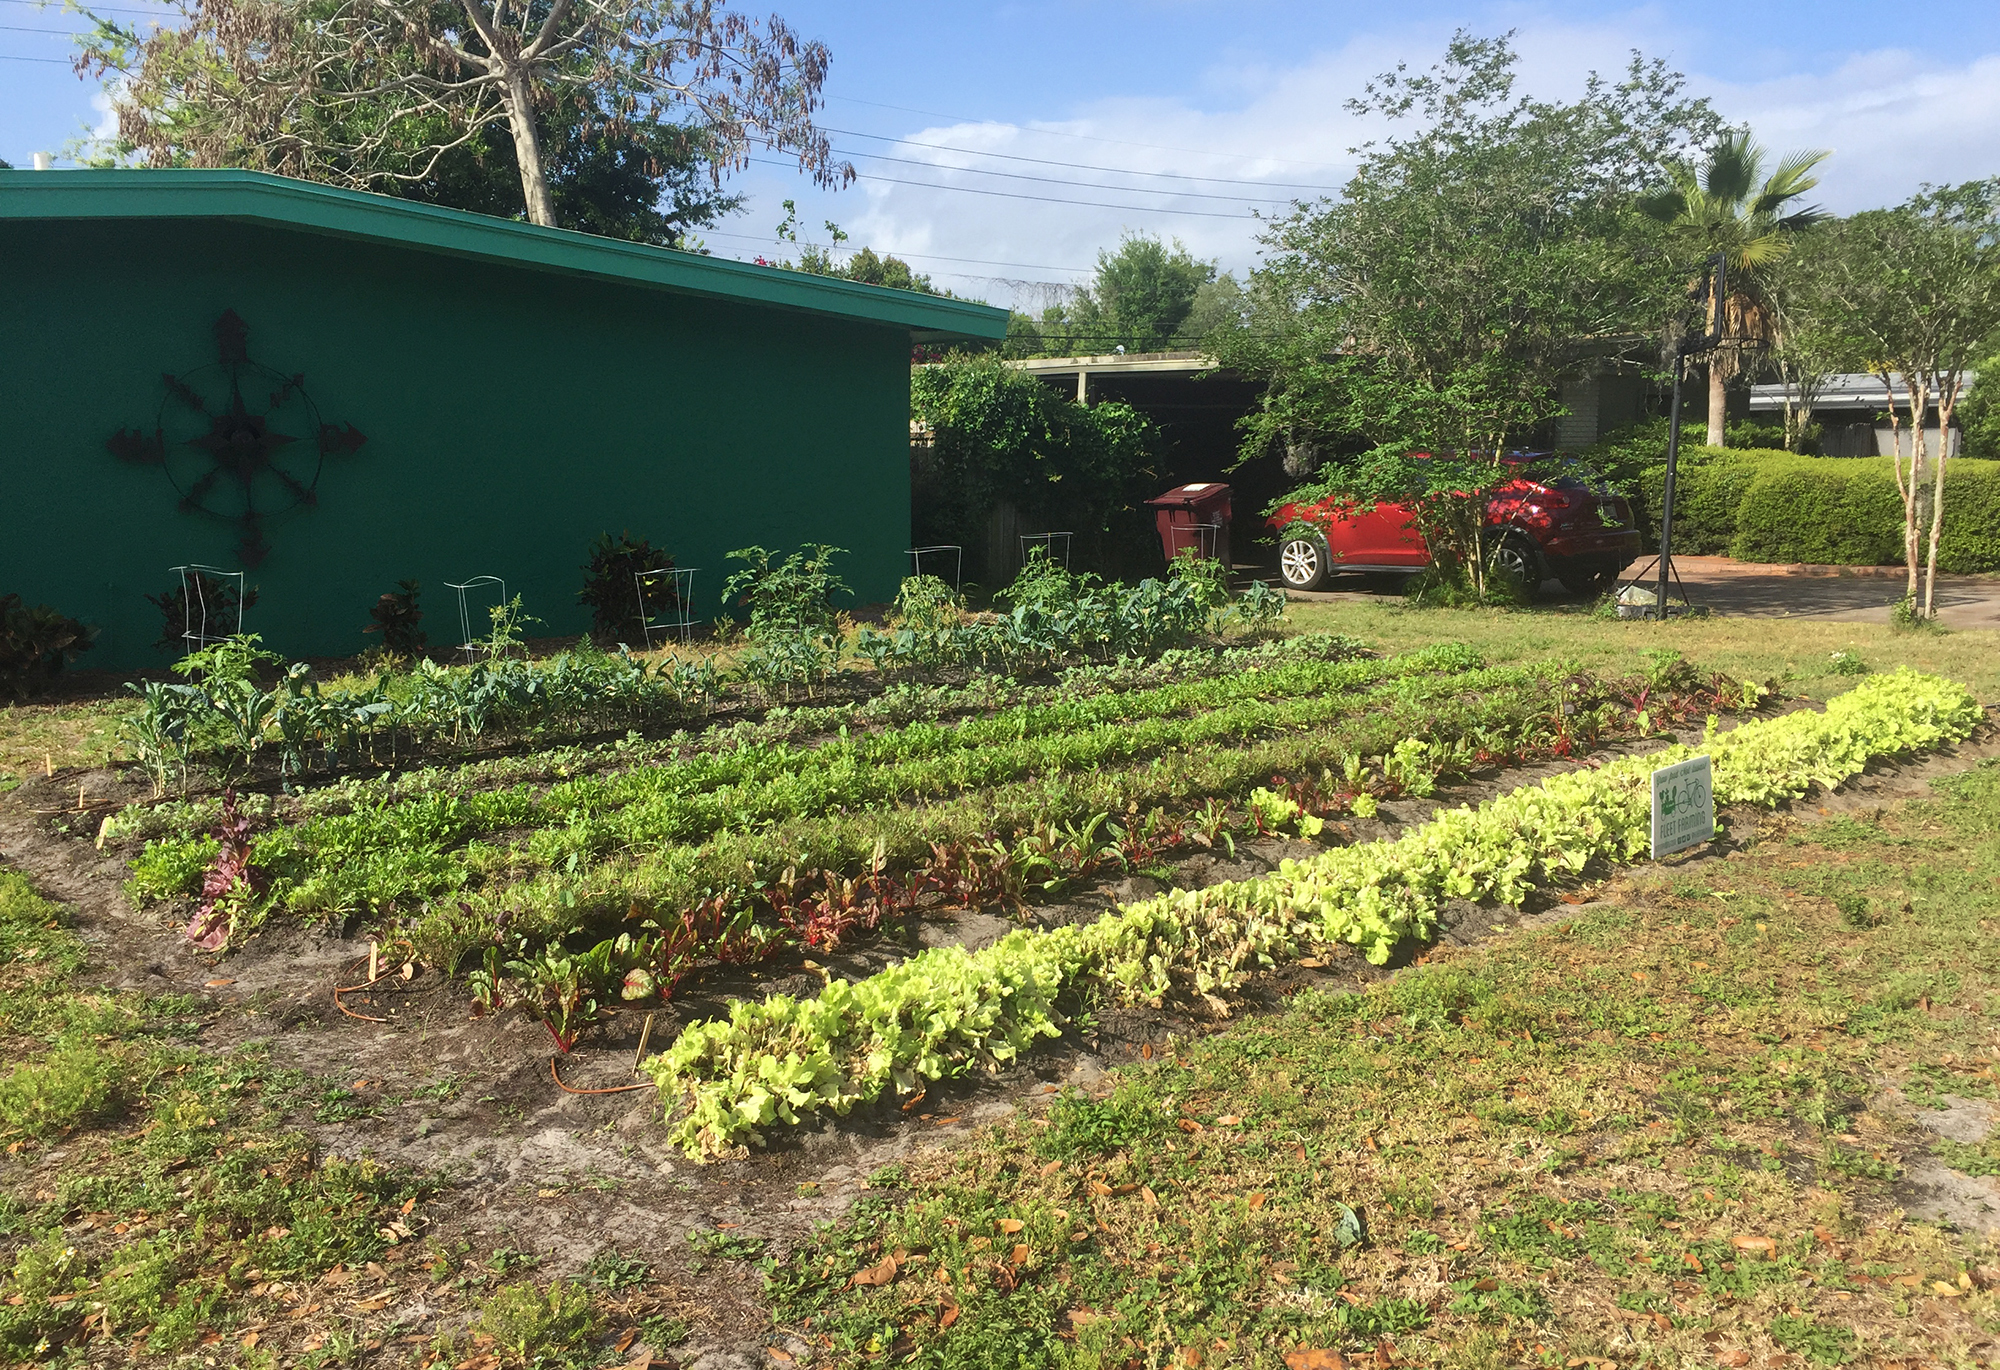 An All-Volunteer Squad Of Farmers Is Turning Florida Lawns Into Food